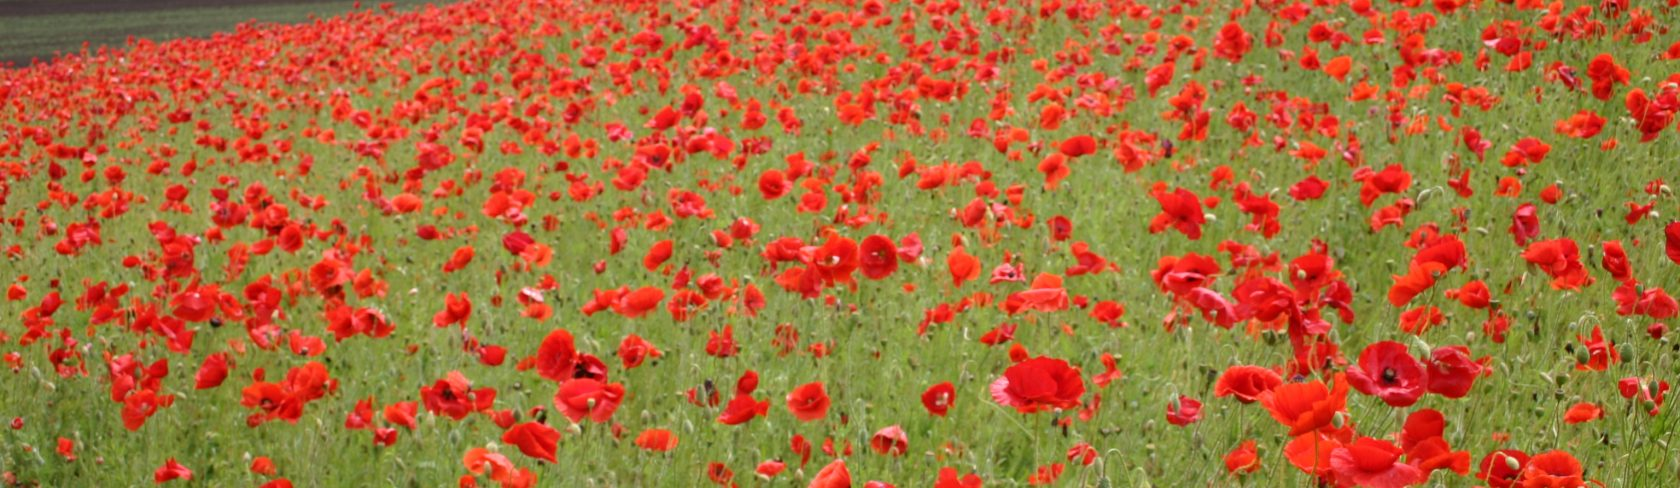 RedPoppyField